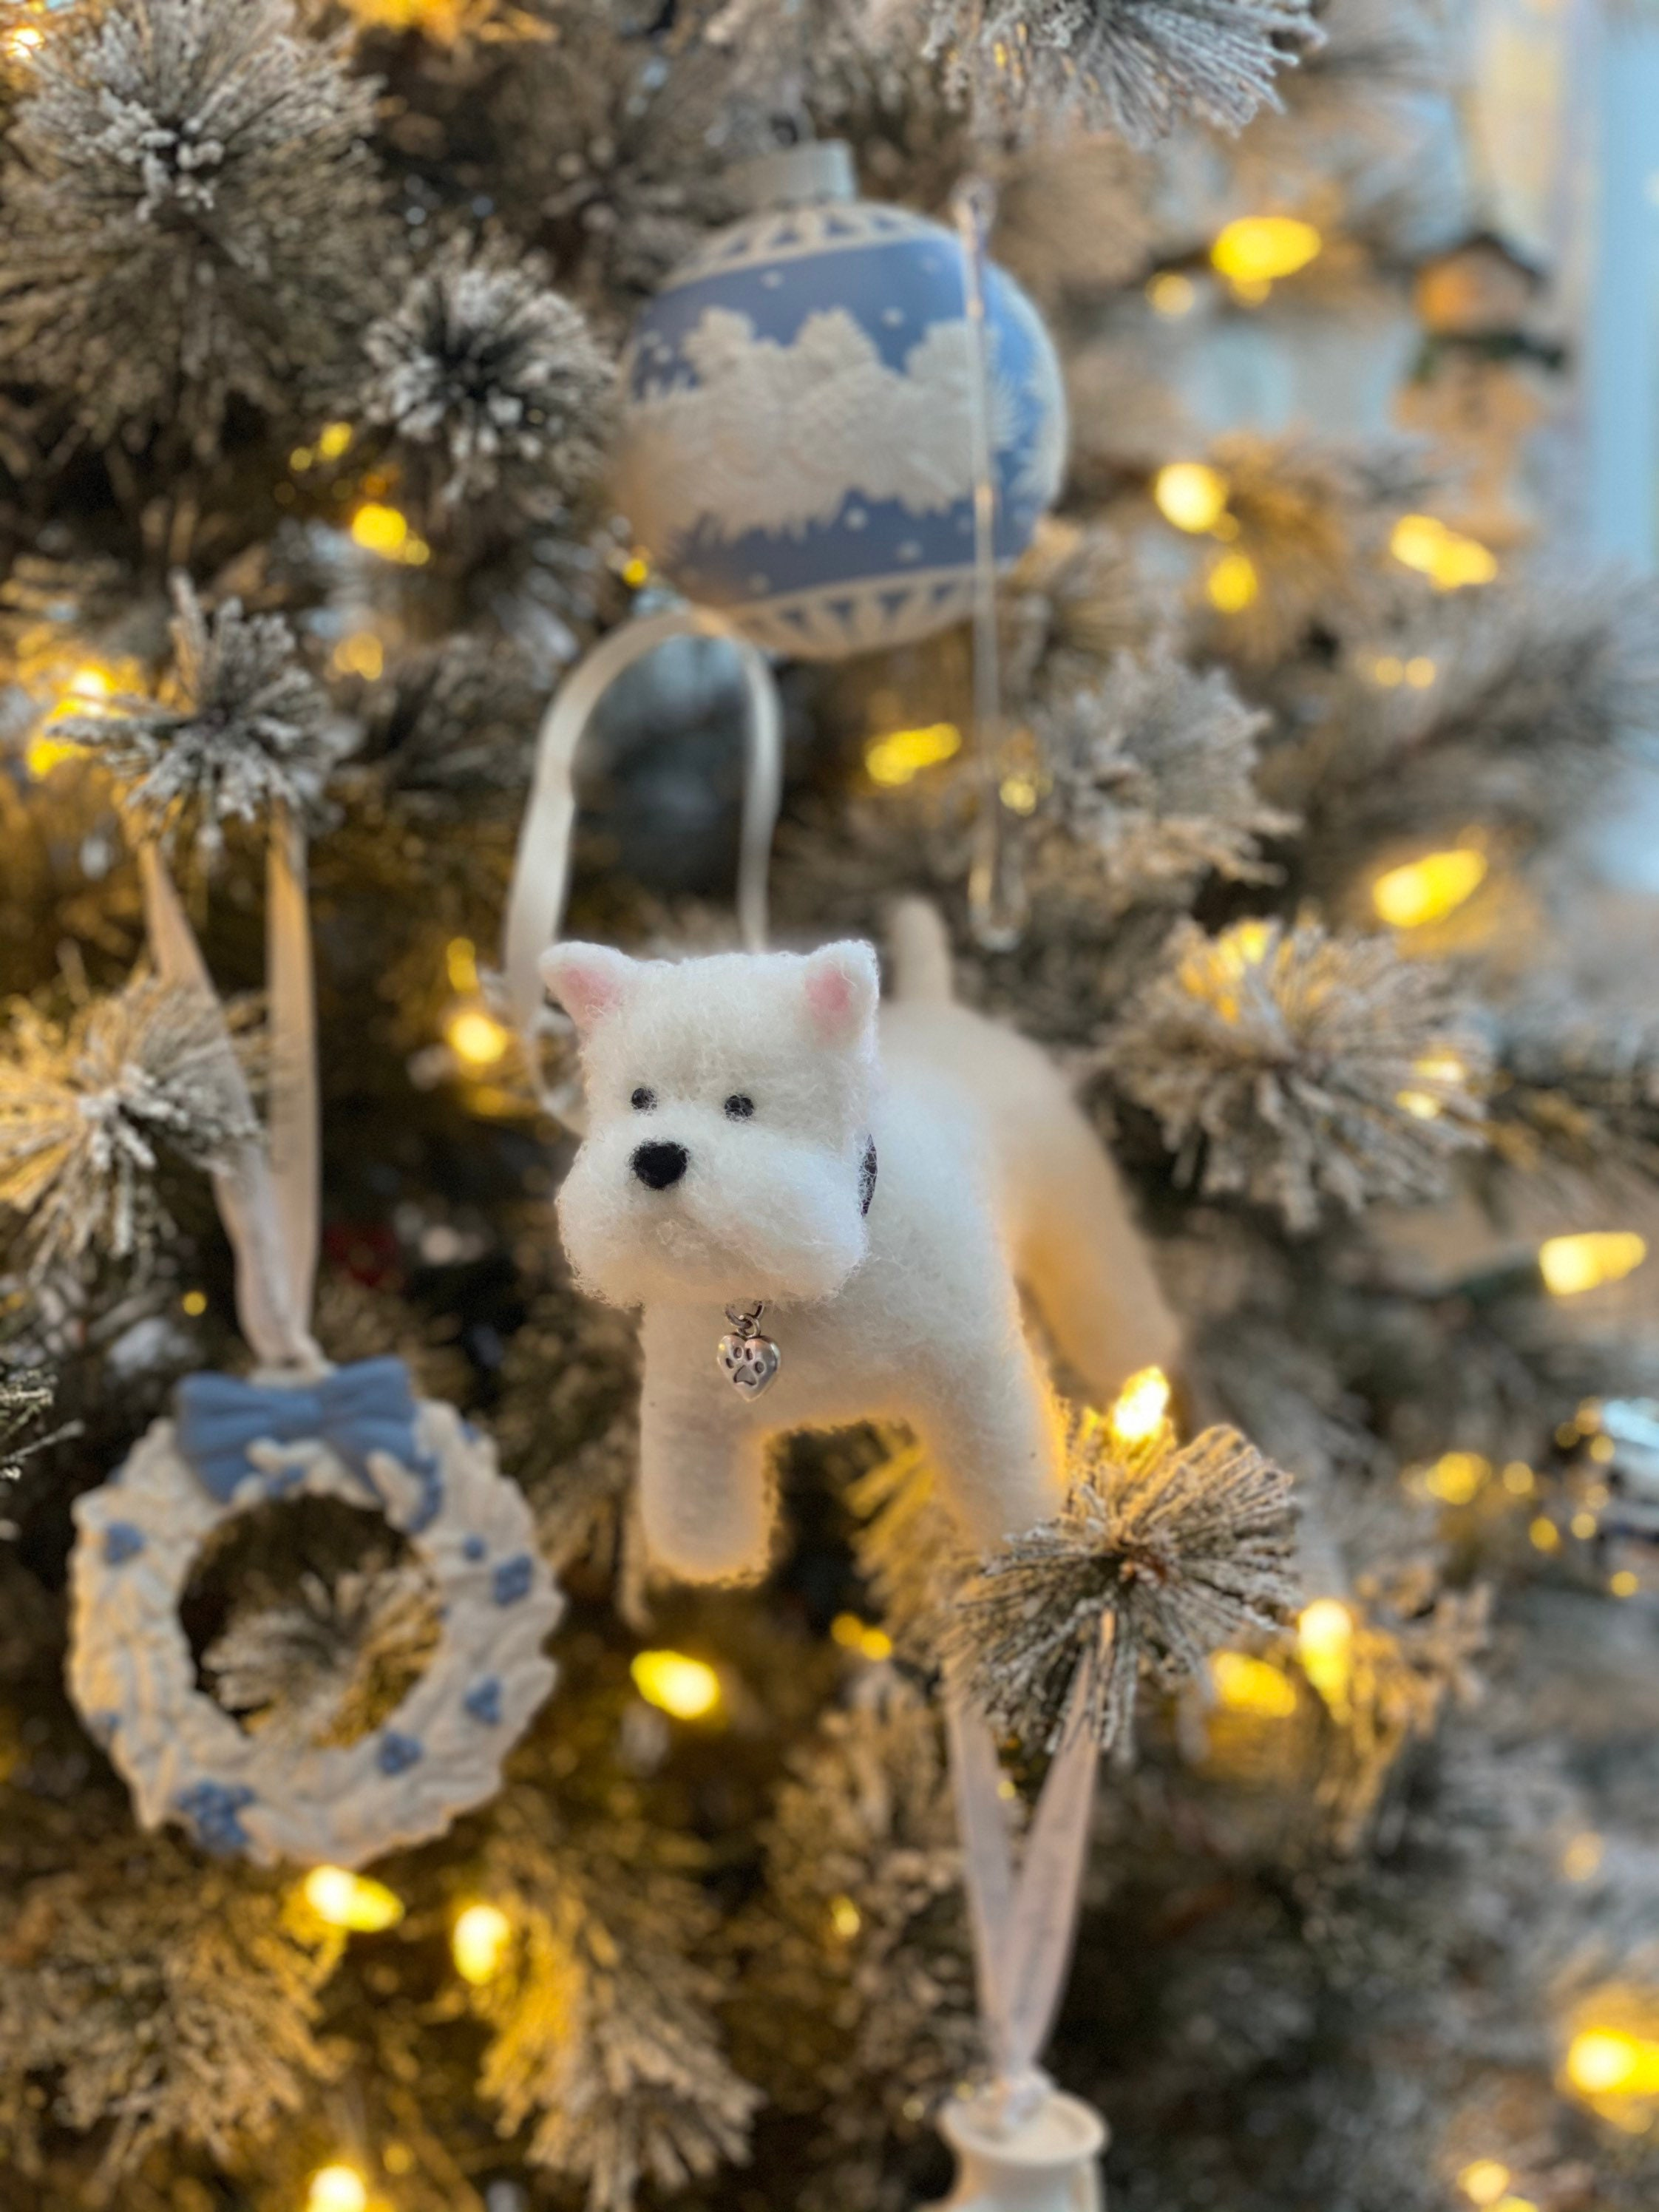 Handmade Needle Felted Wool West Highland Terrier Sculpture Christmas Tree Decoration